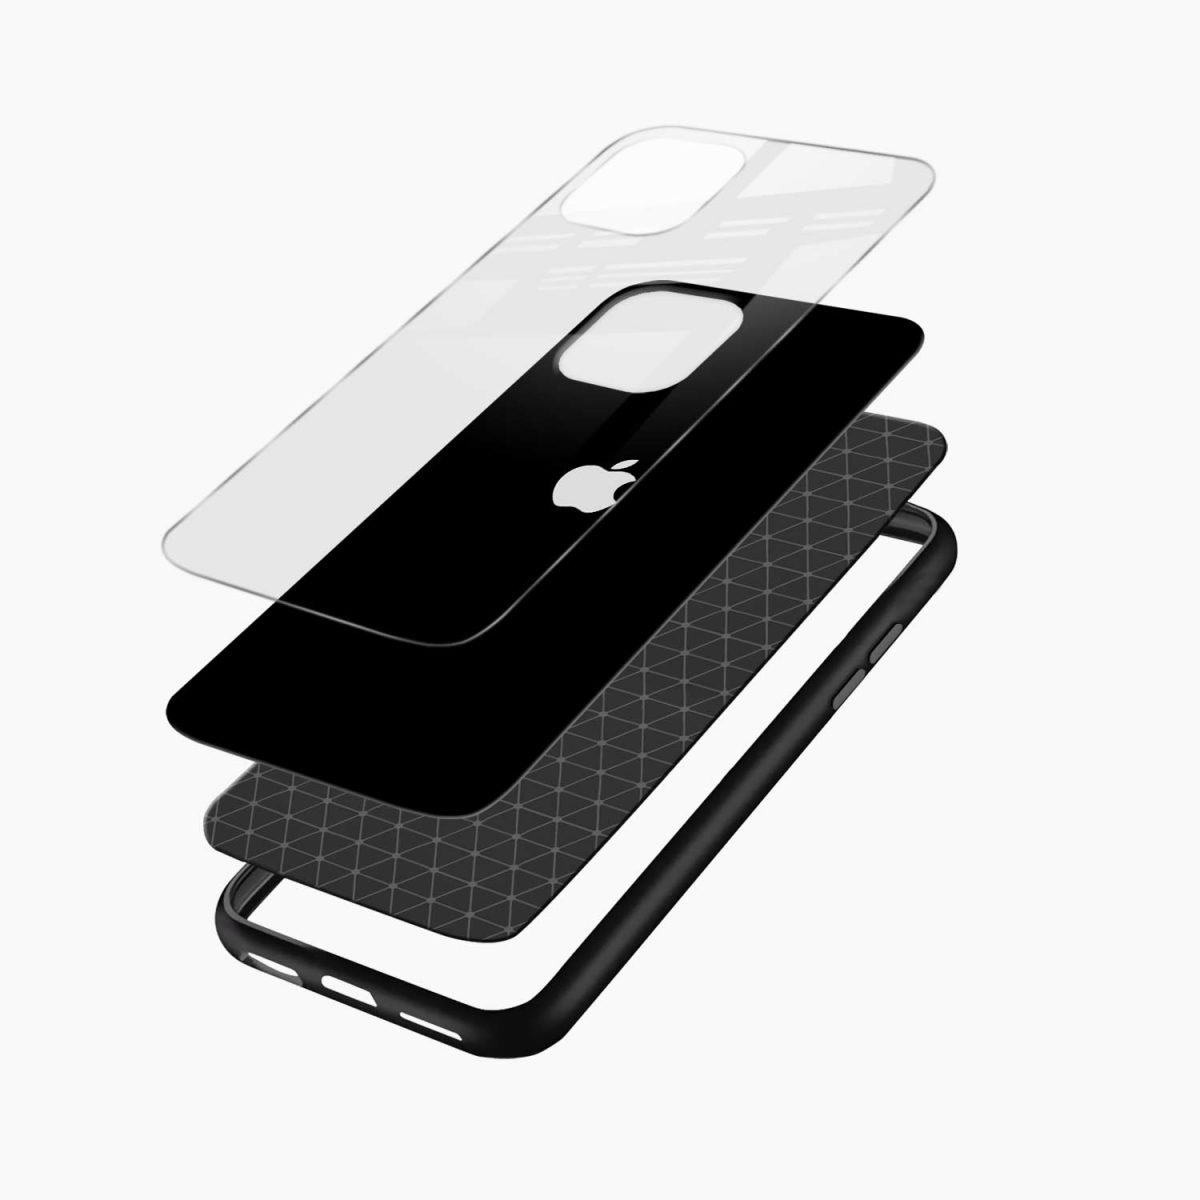 simply elegant iphone back cover layers view